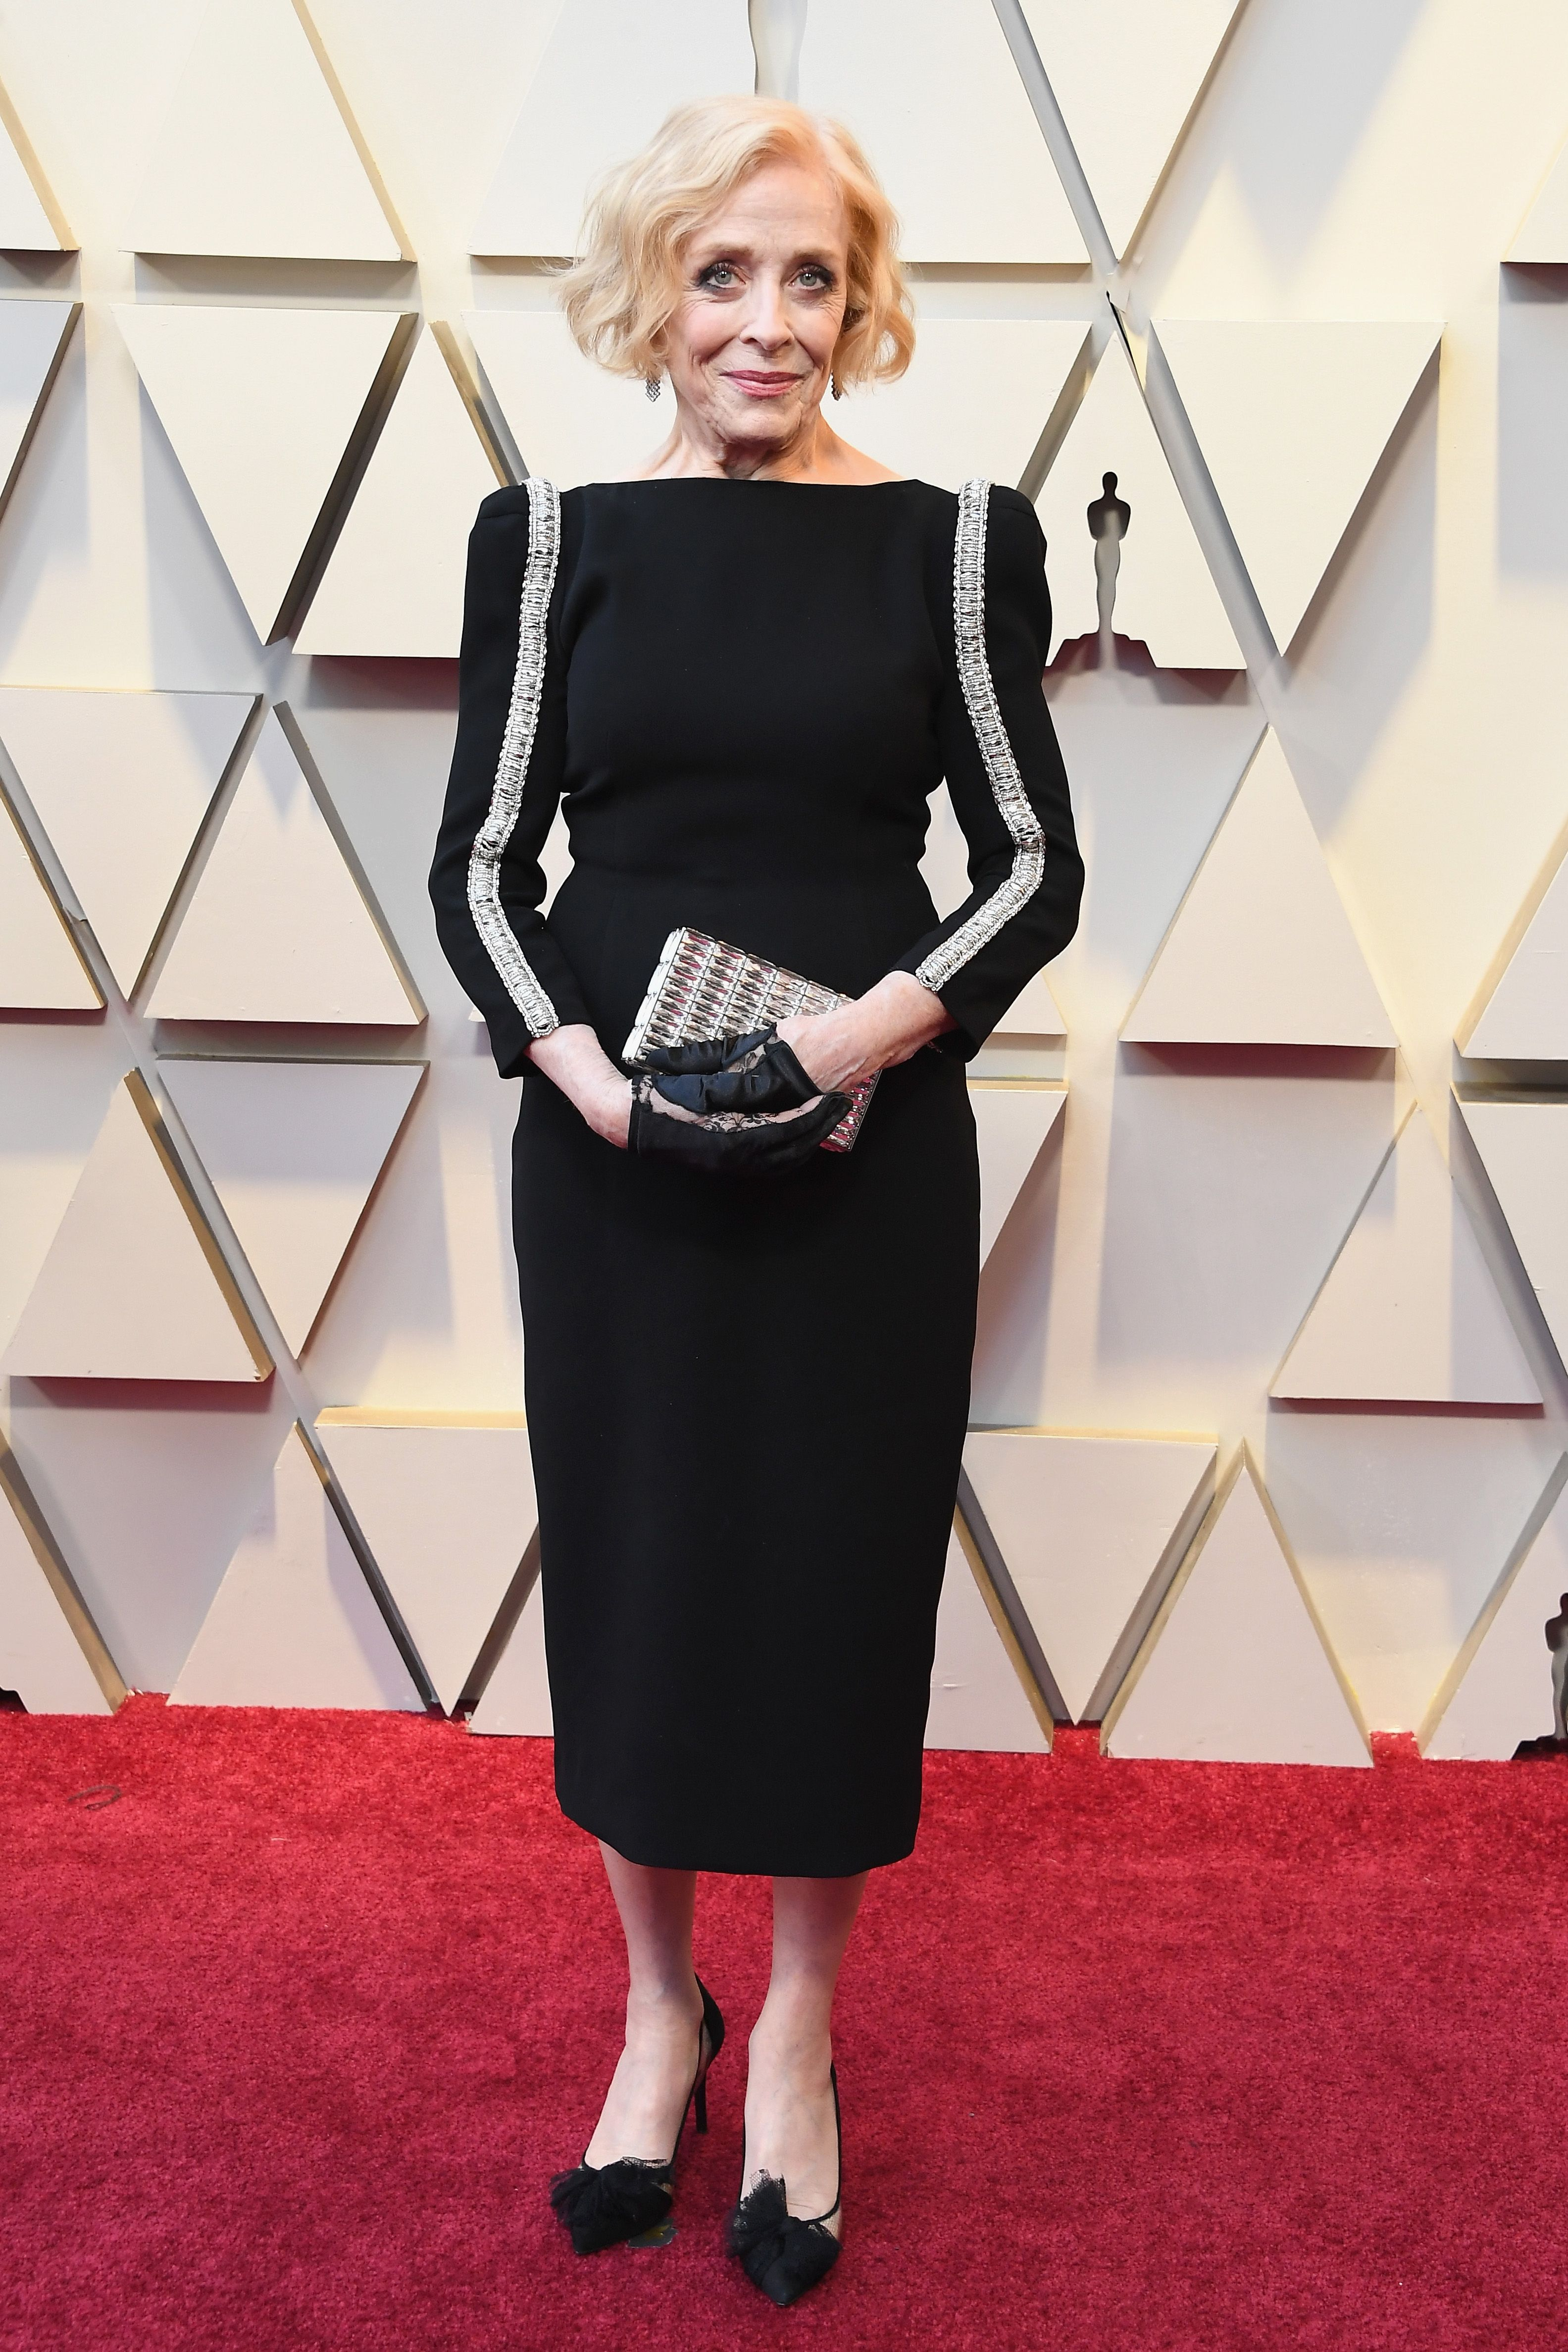 Holland Taylor at the Oscars 2019